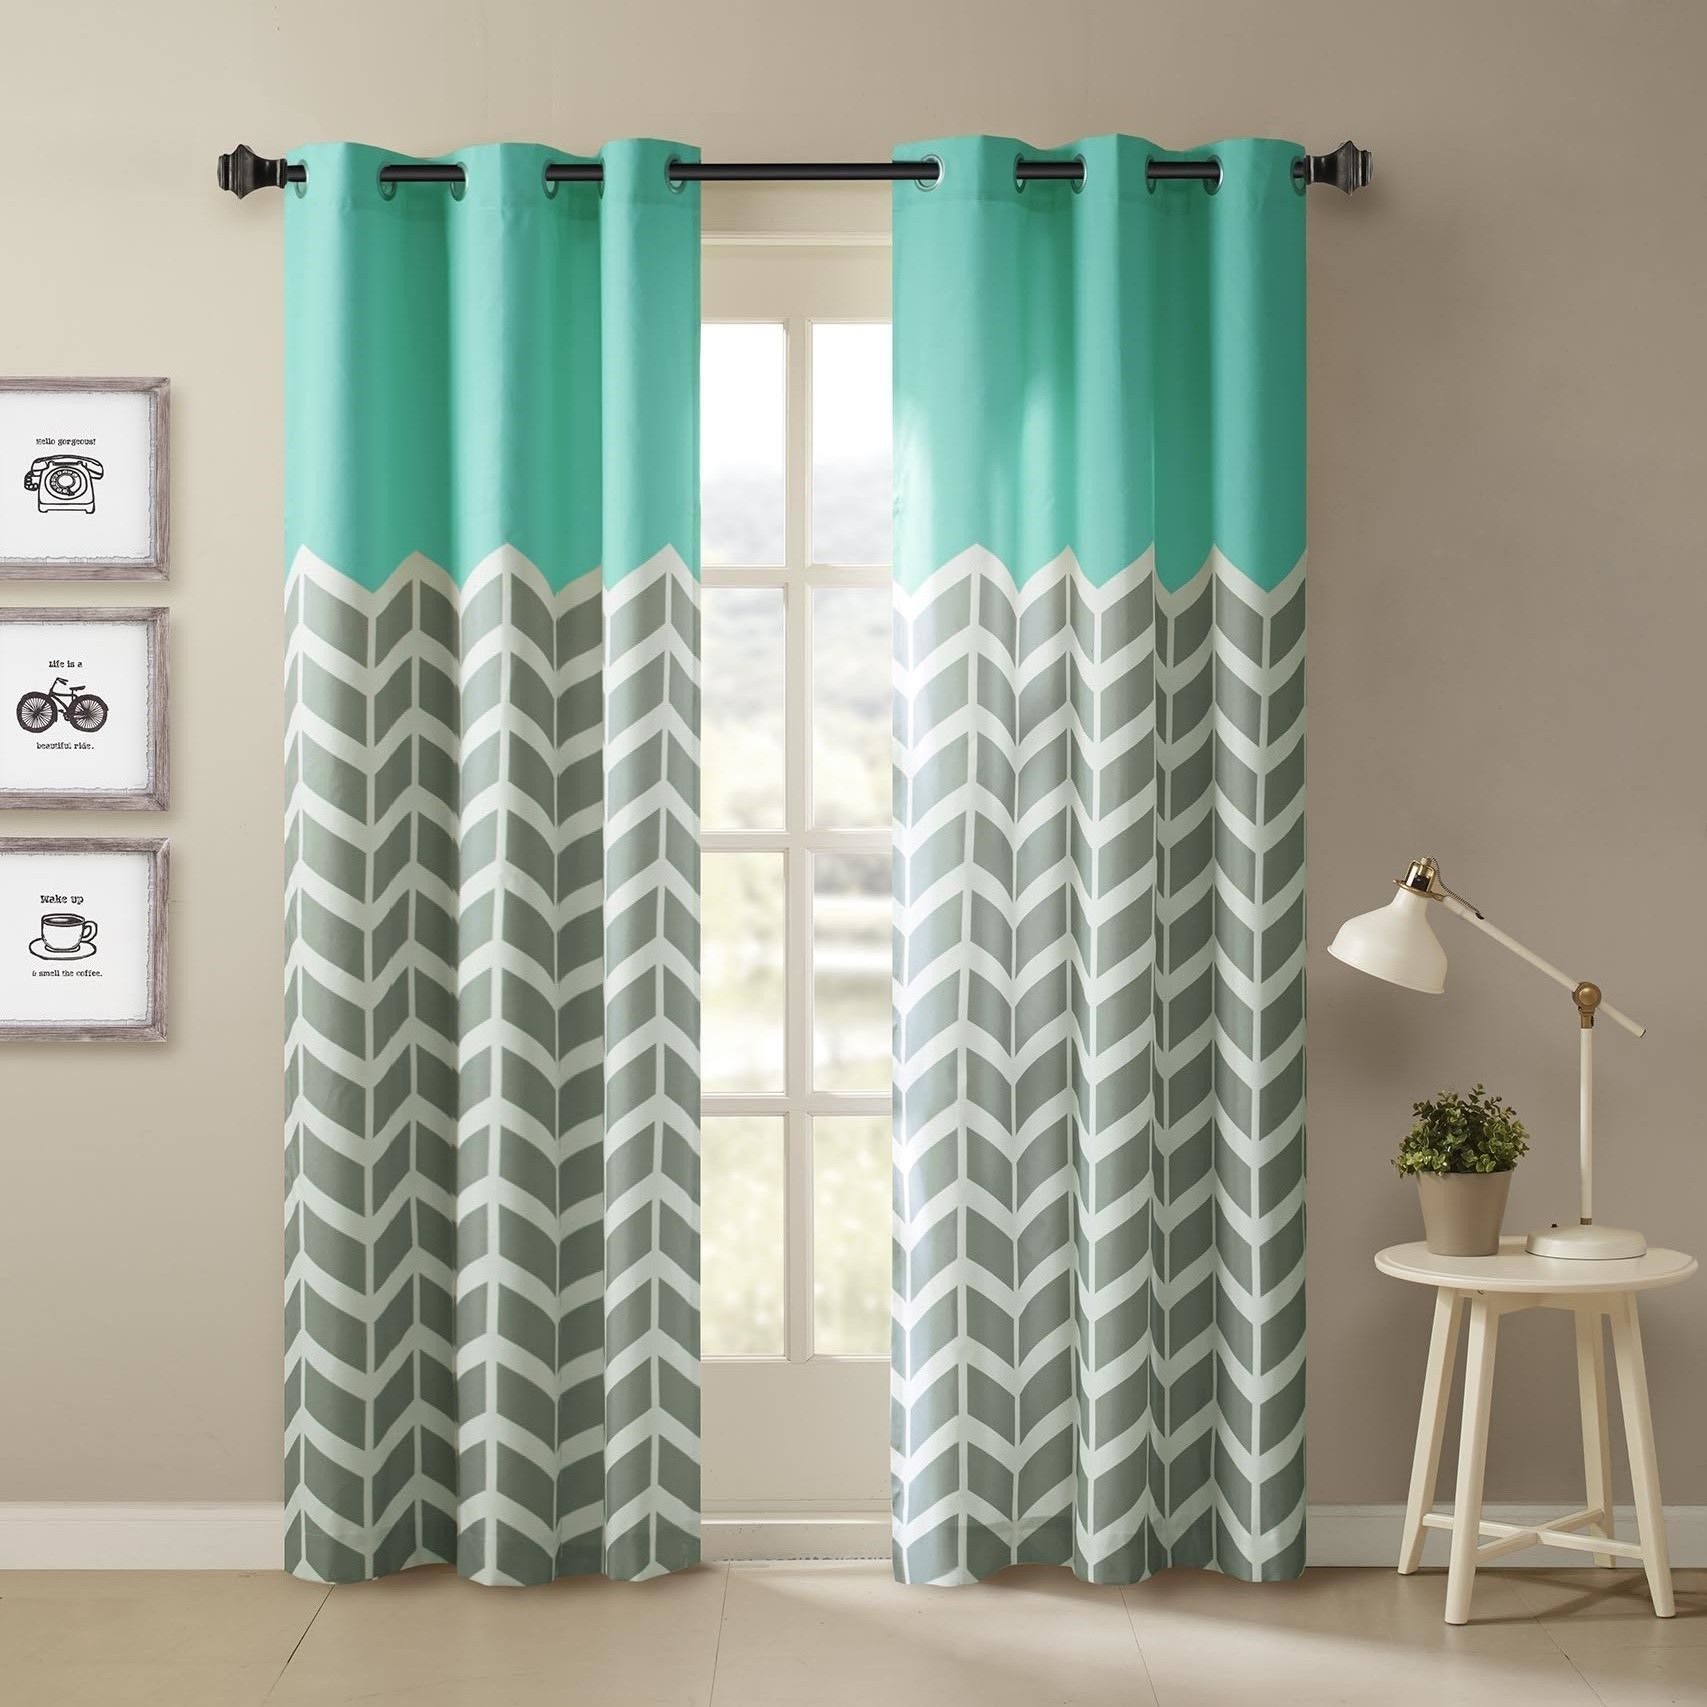 Intelligent design rayna chevron printed grommet top curtain panel pair by id intelligent designs